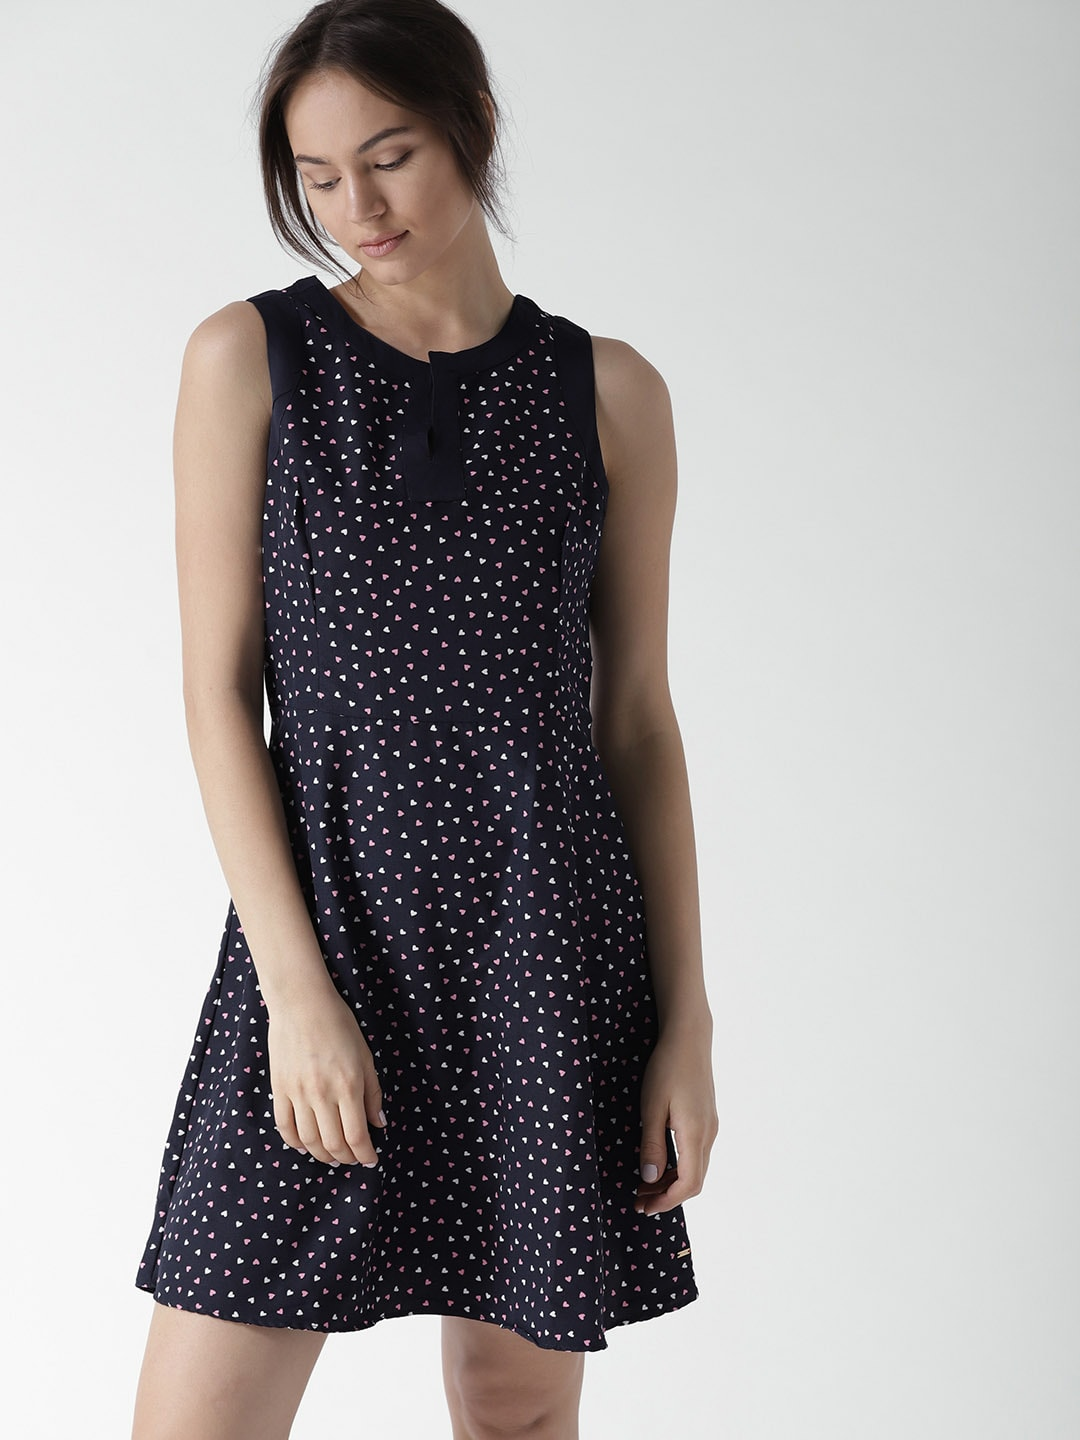 ad88b44791e4 Tommy Hilfiger Casual Dresses - Buy Tommy Hilfiger Casual Dresses online in  India